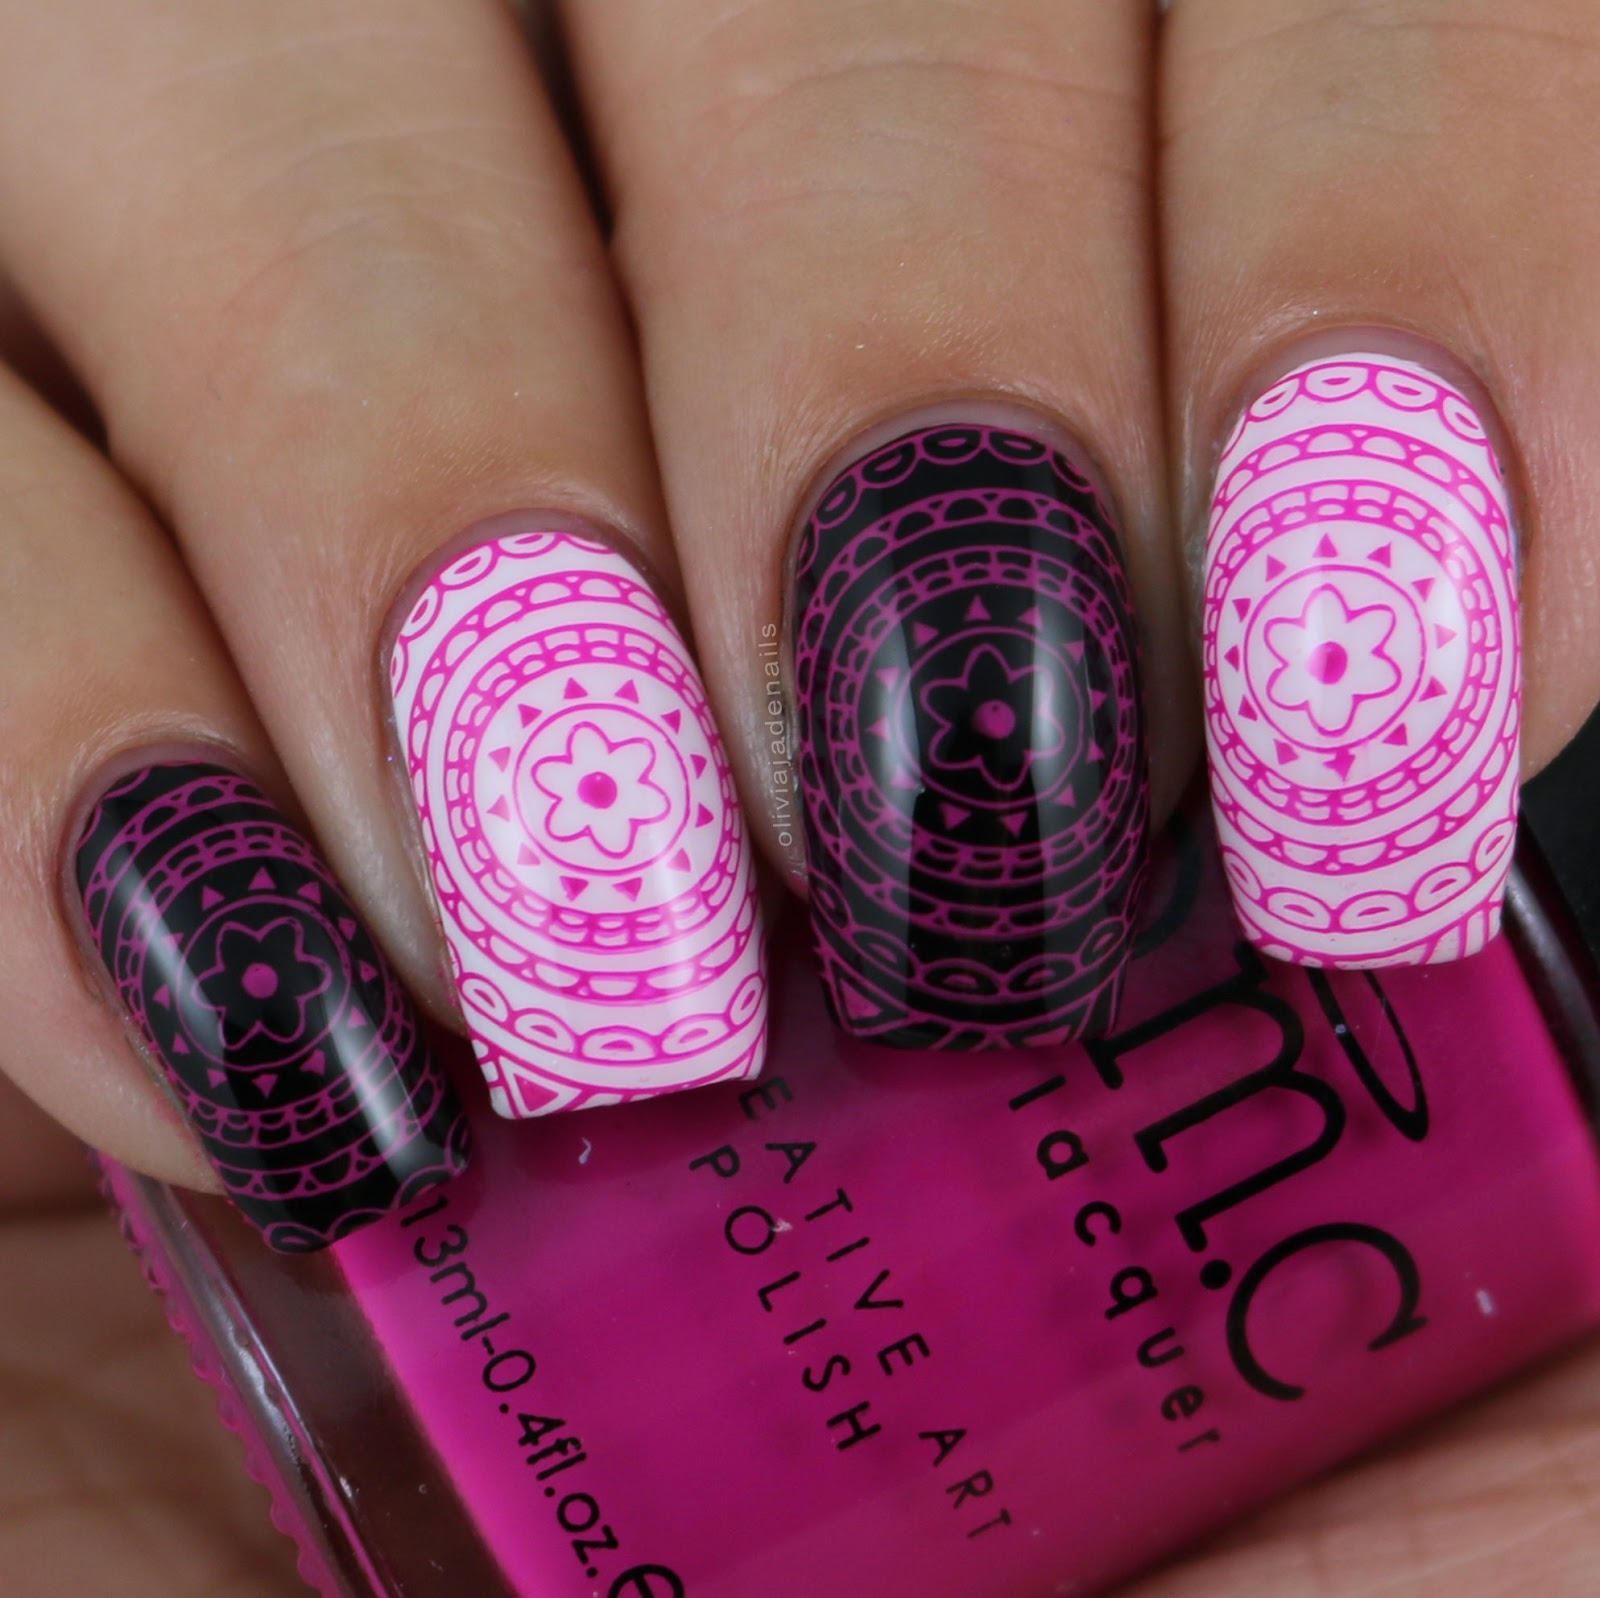 bundle monster stamping polish review